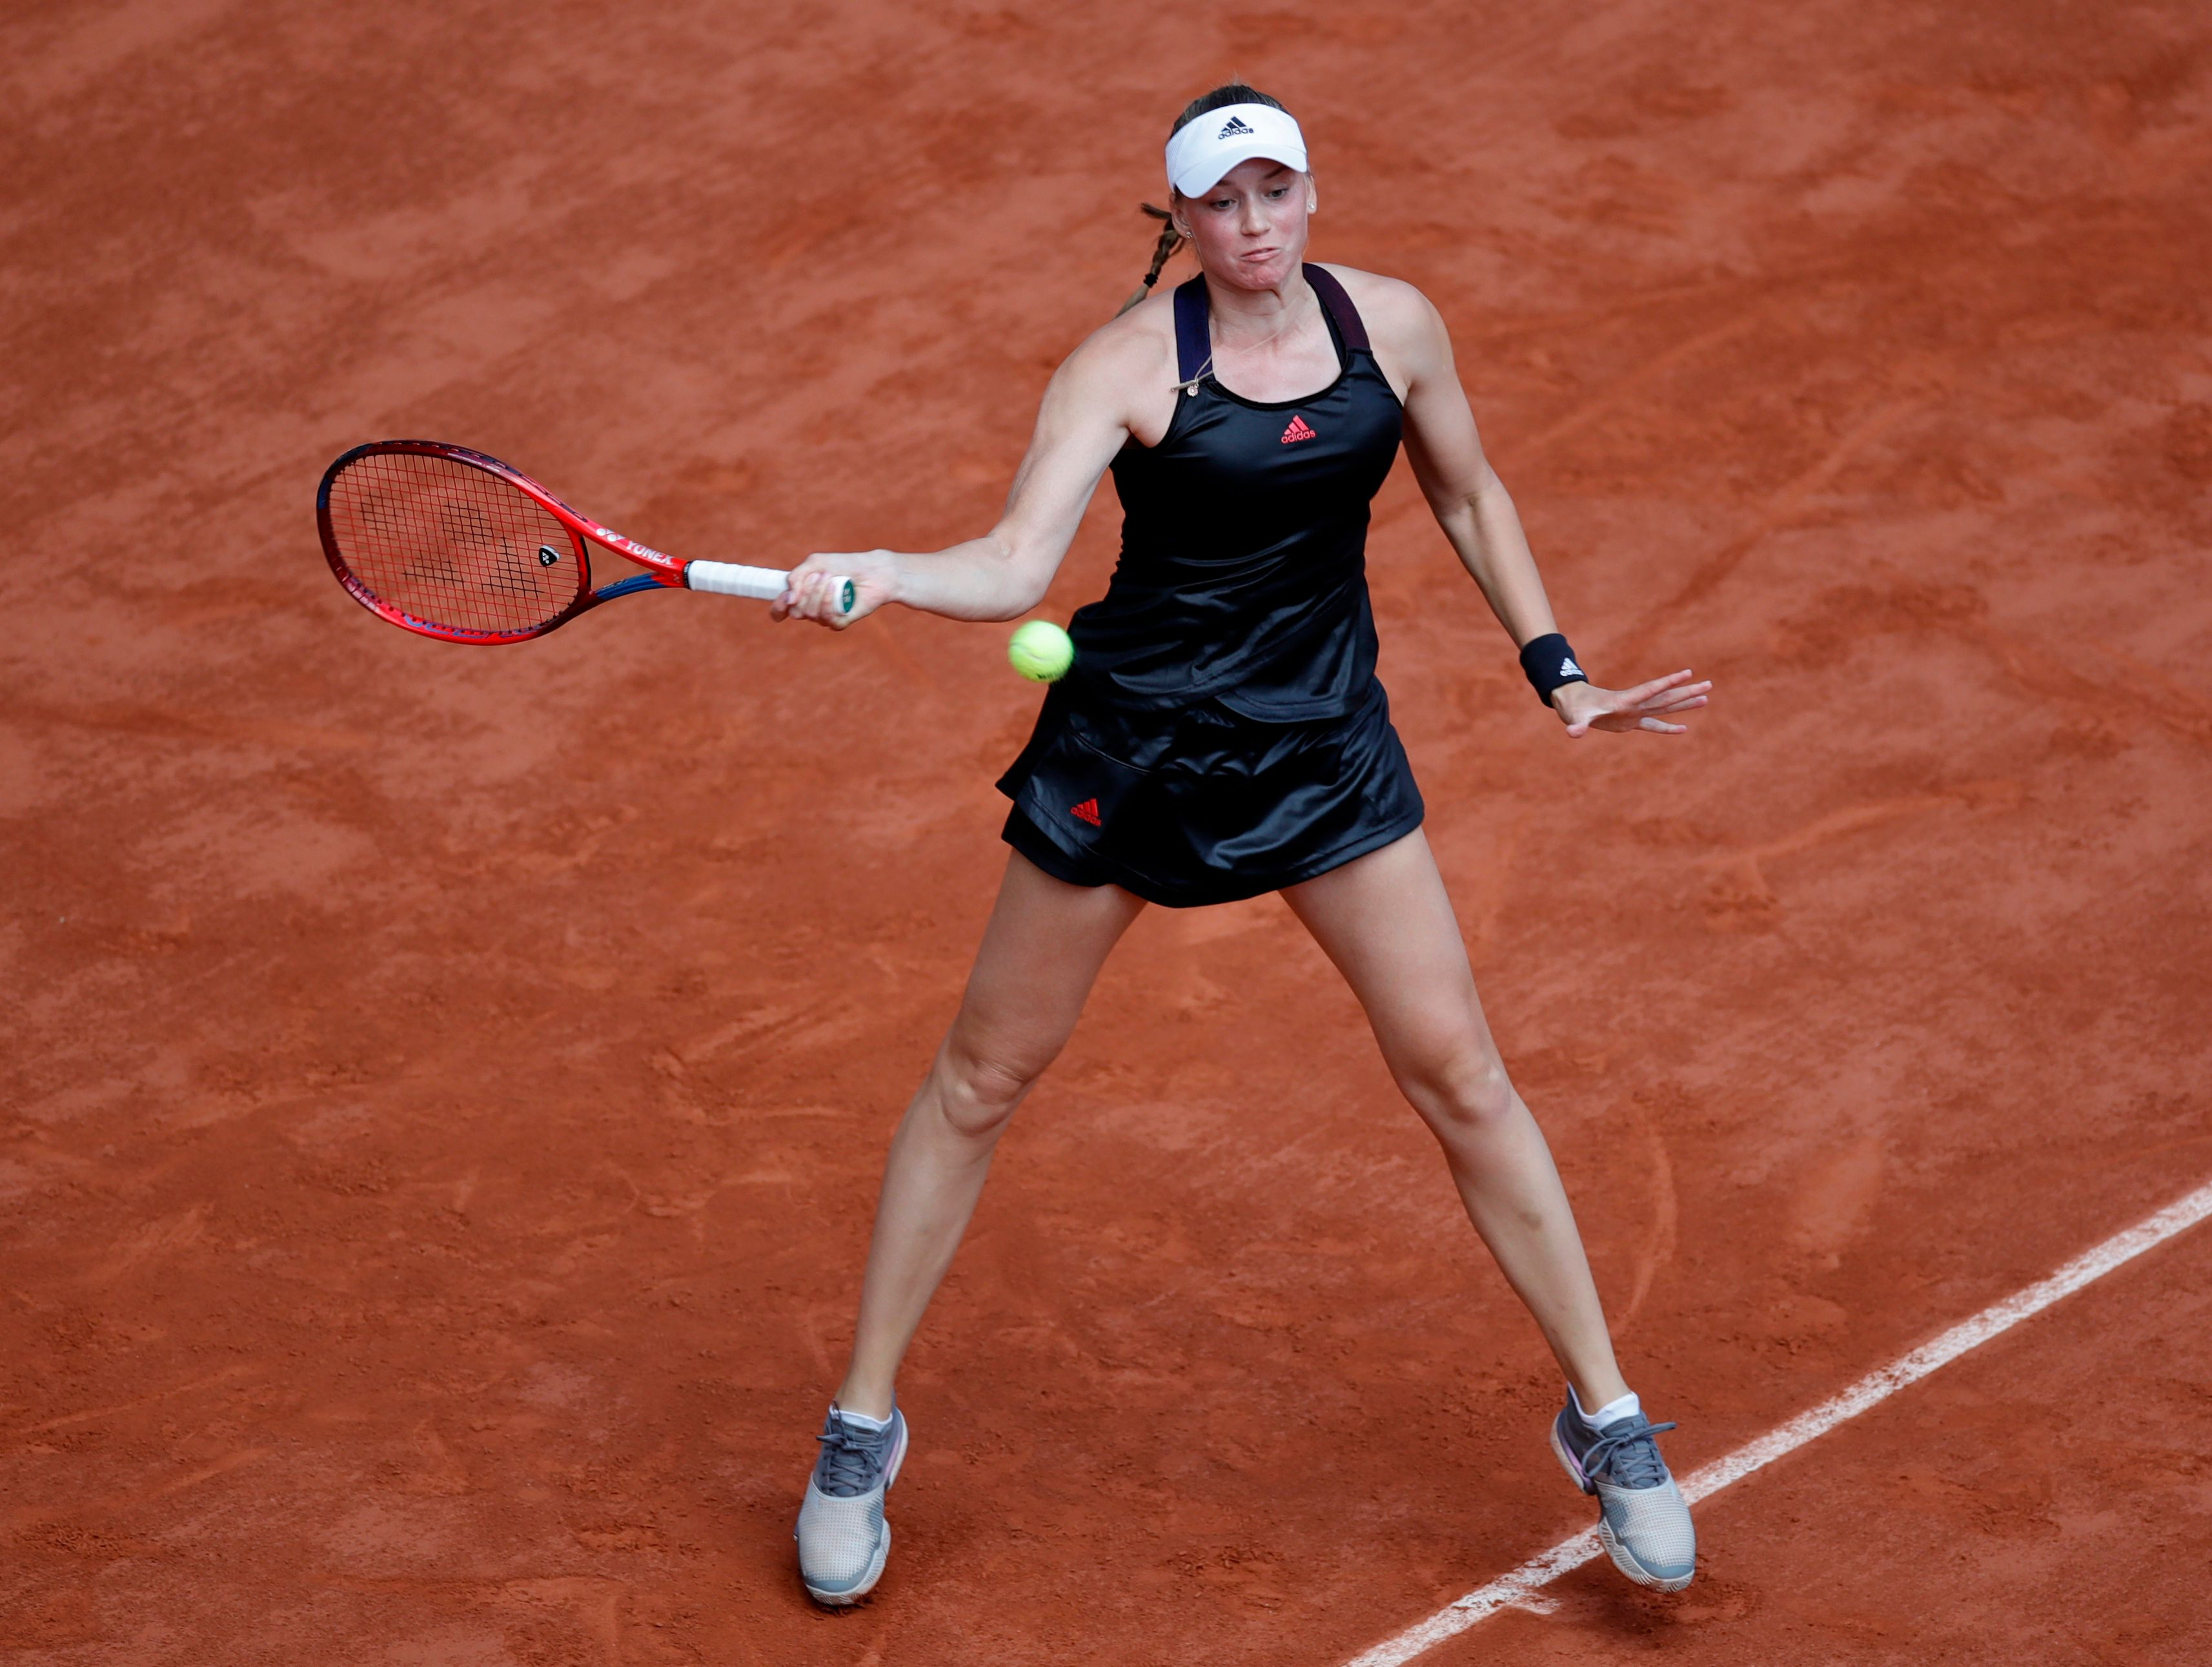 Rybakina stays cool after win over Serena | Reuters